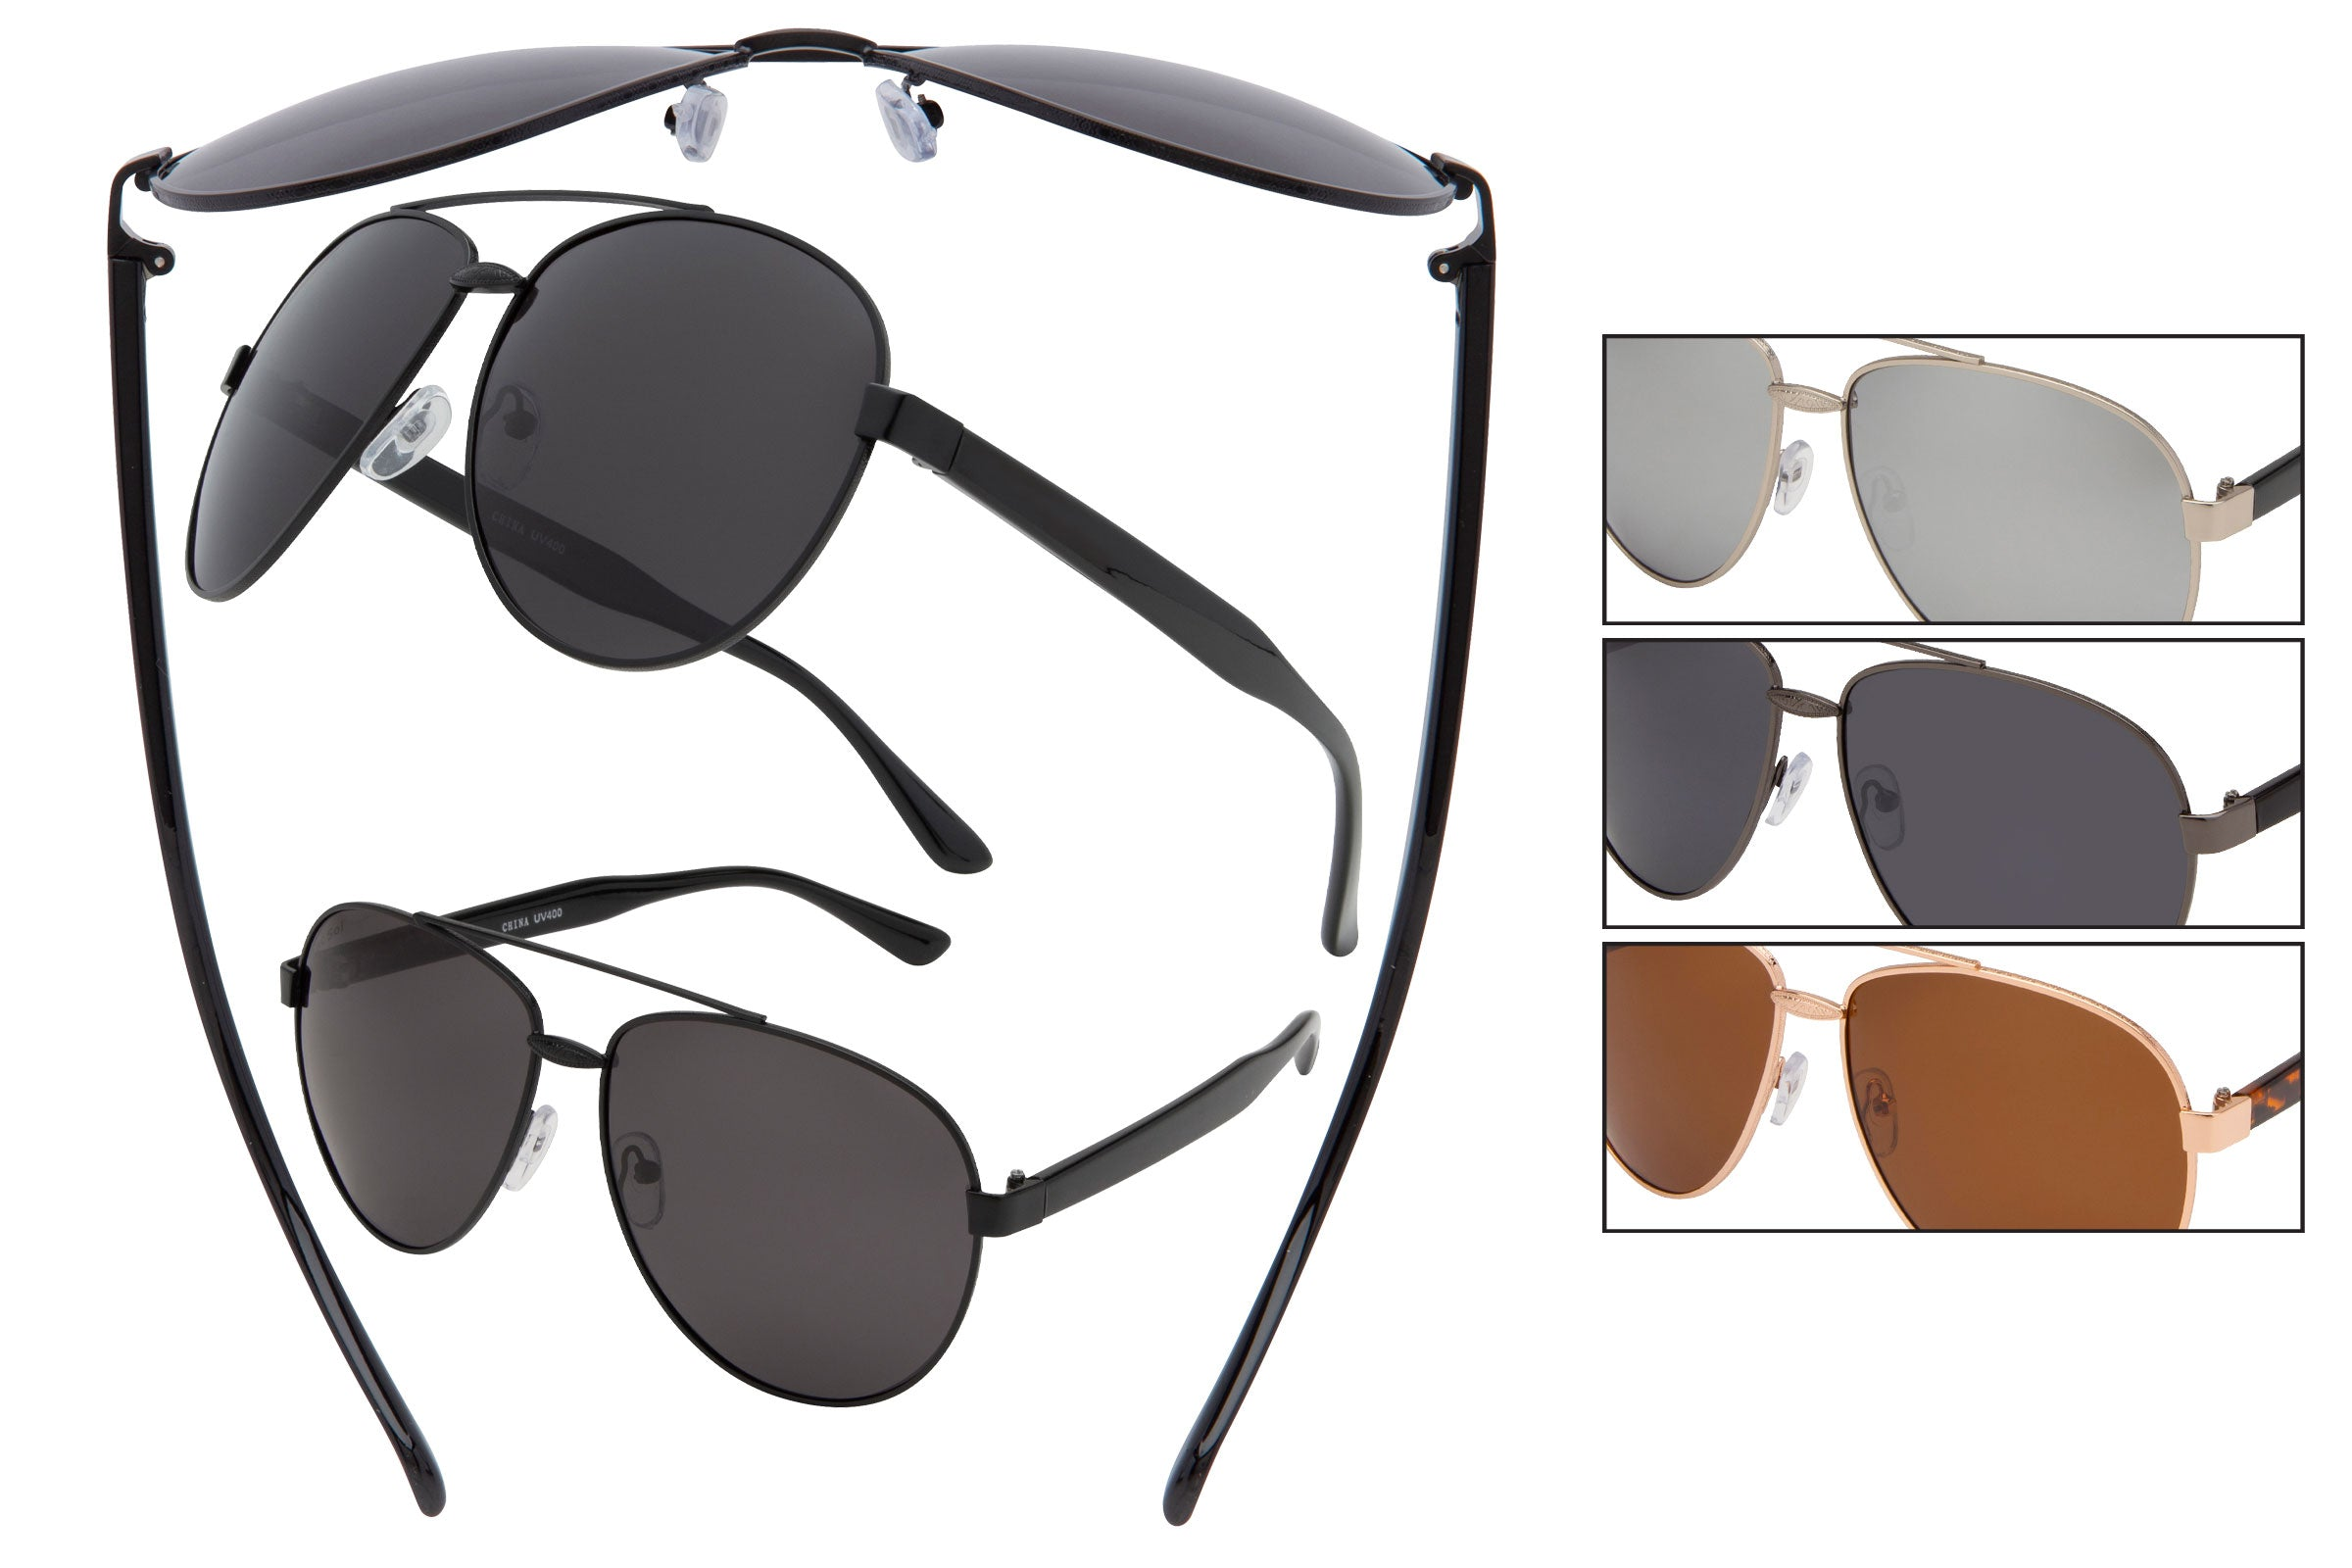 TF15P - Polarized Pilot Sunglasses